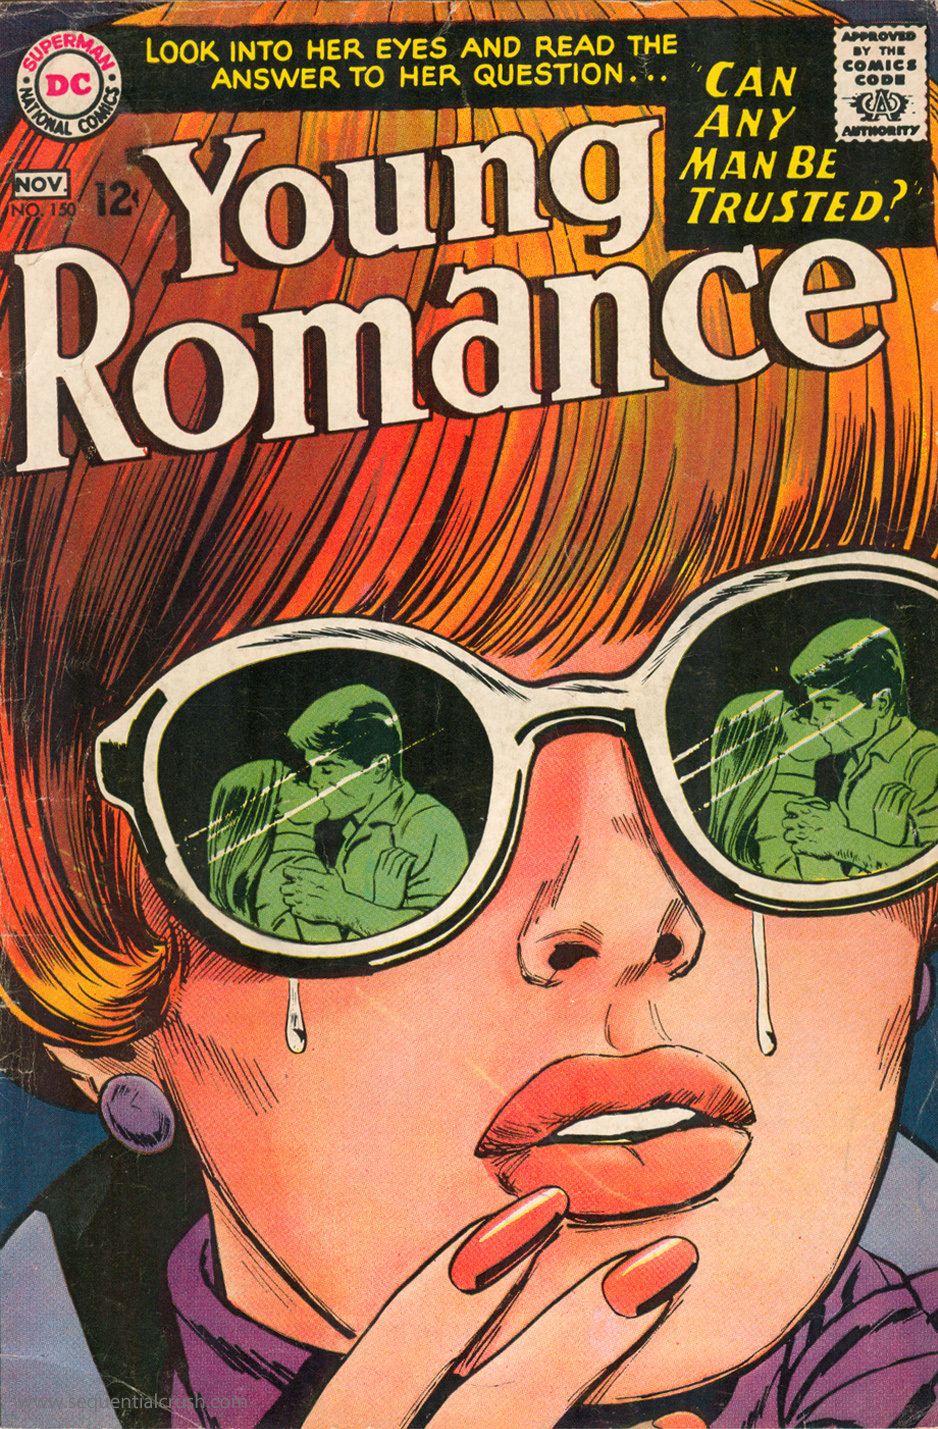 Pike also illustrated one of the most iconic romance covers ever created. I'll be posting more in-depth on this one soon.